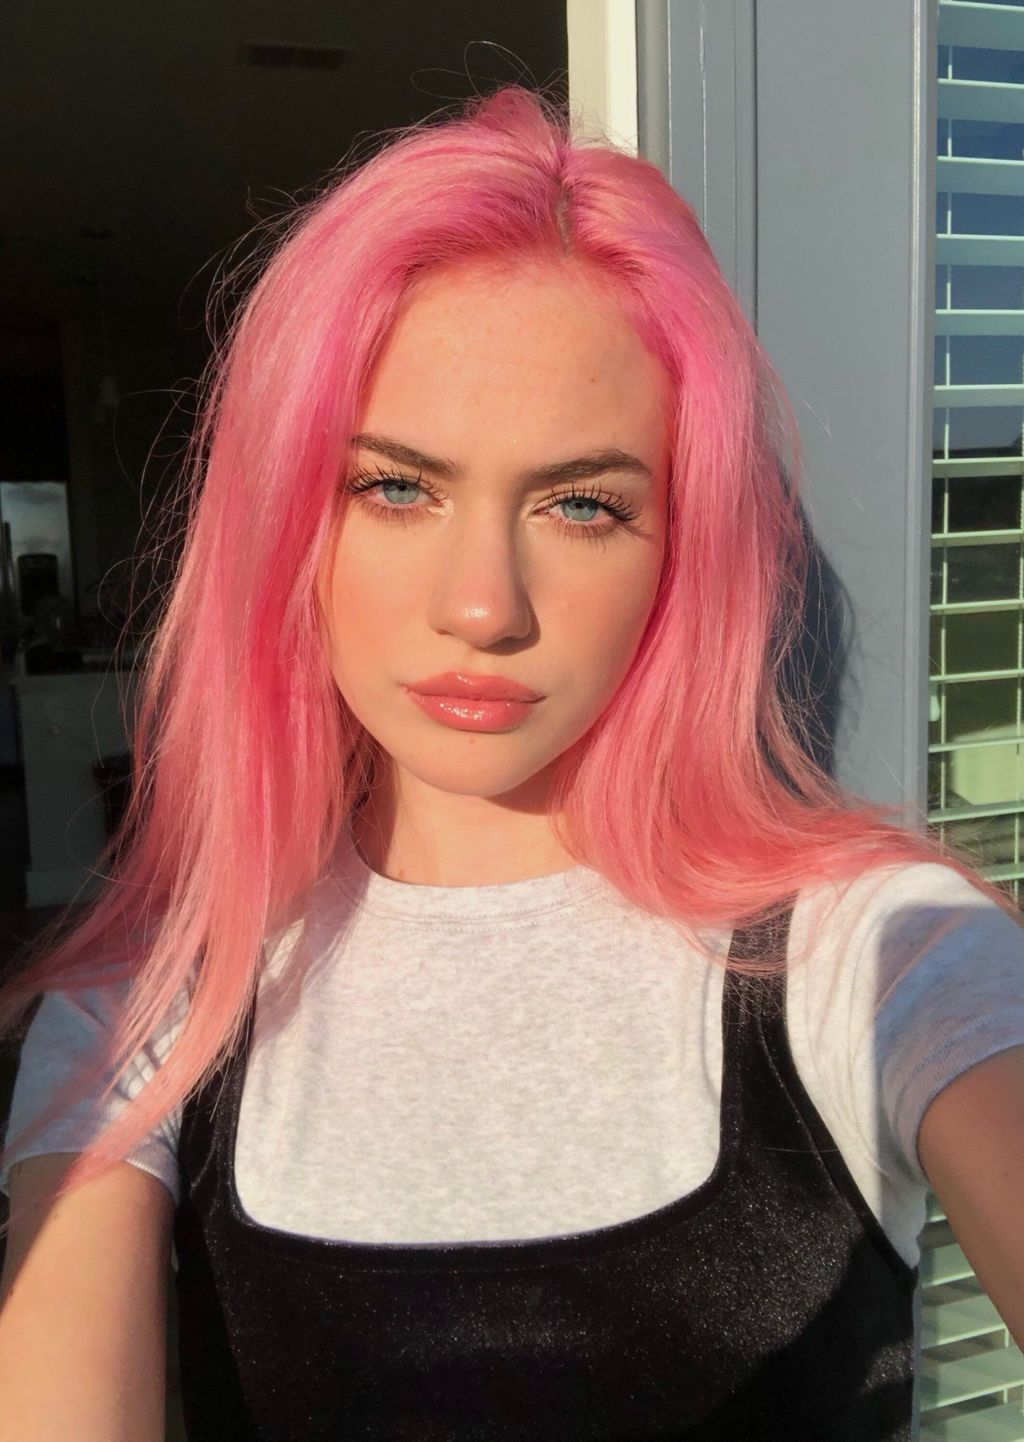 45 Stunning And Awesome Pink Hair Style Page 1 Of 12 In 2020 Hair Inspo Color Hair Styles Hair Color For Women